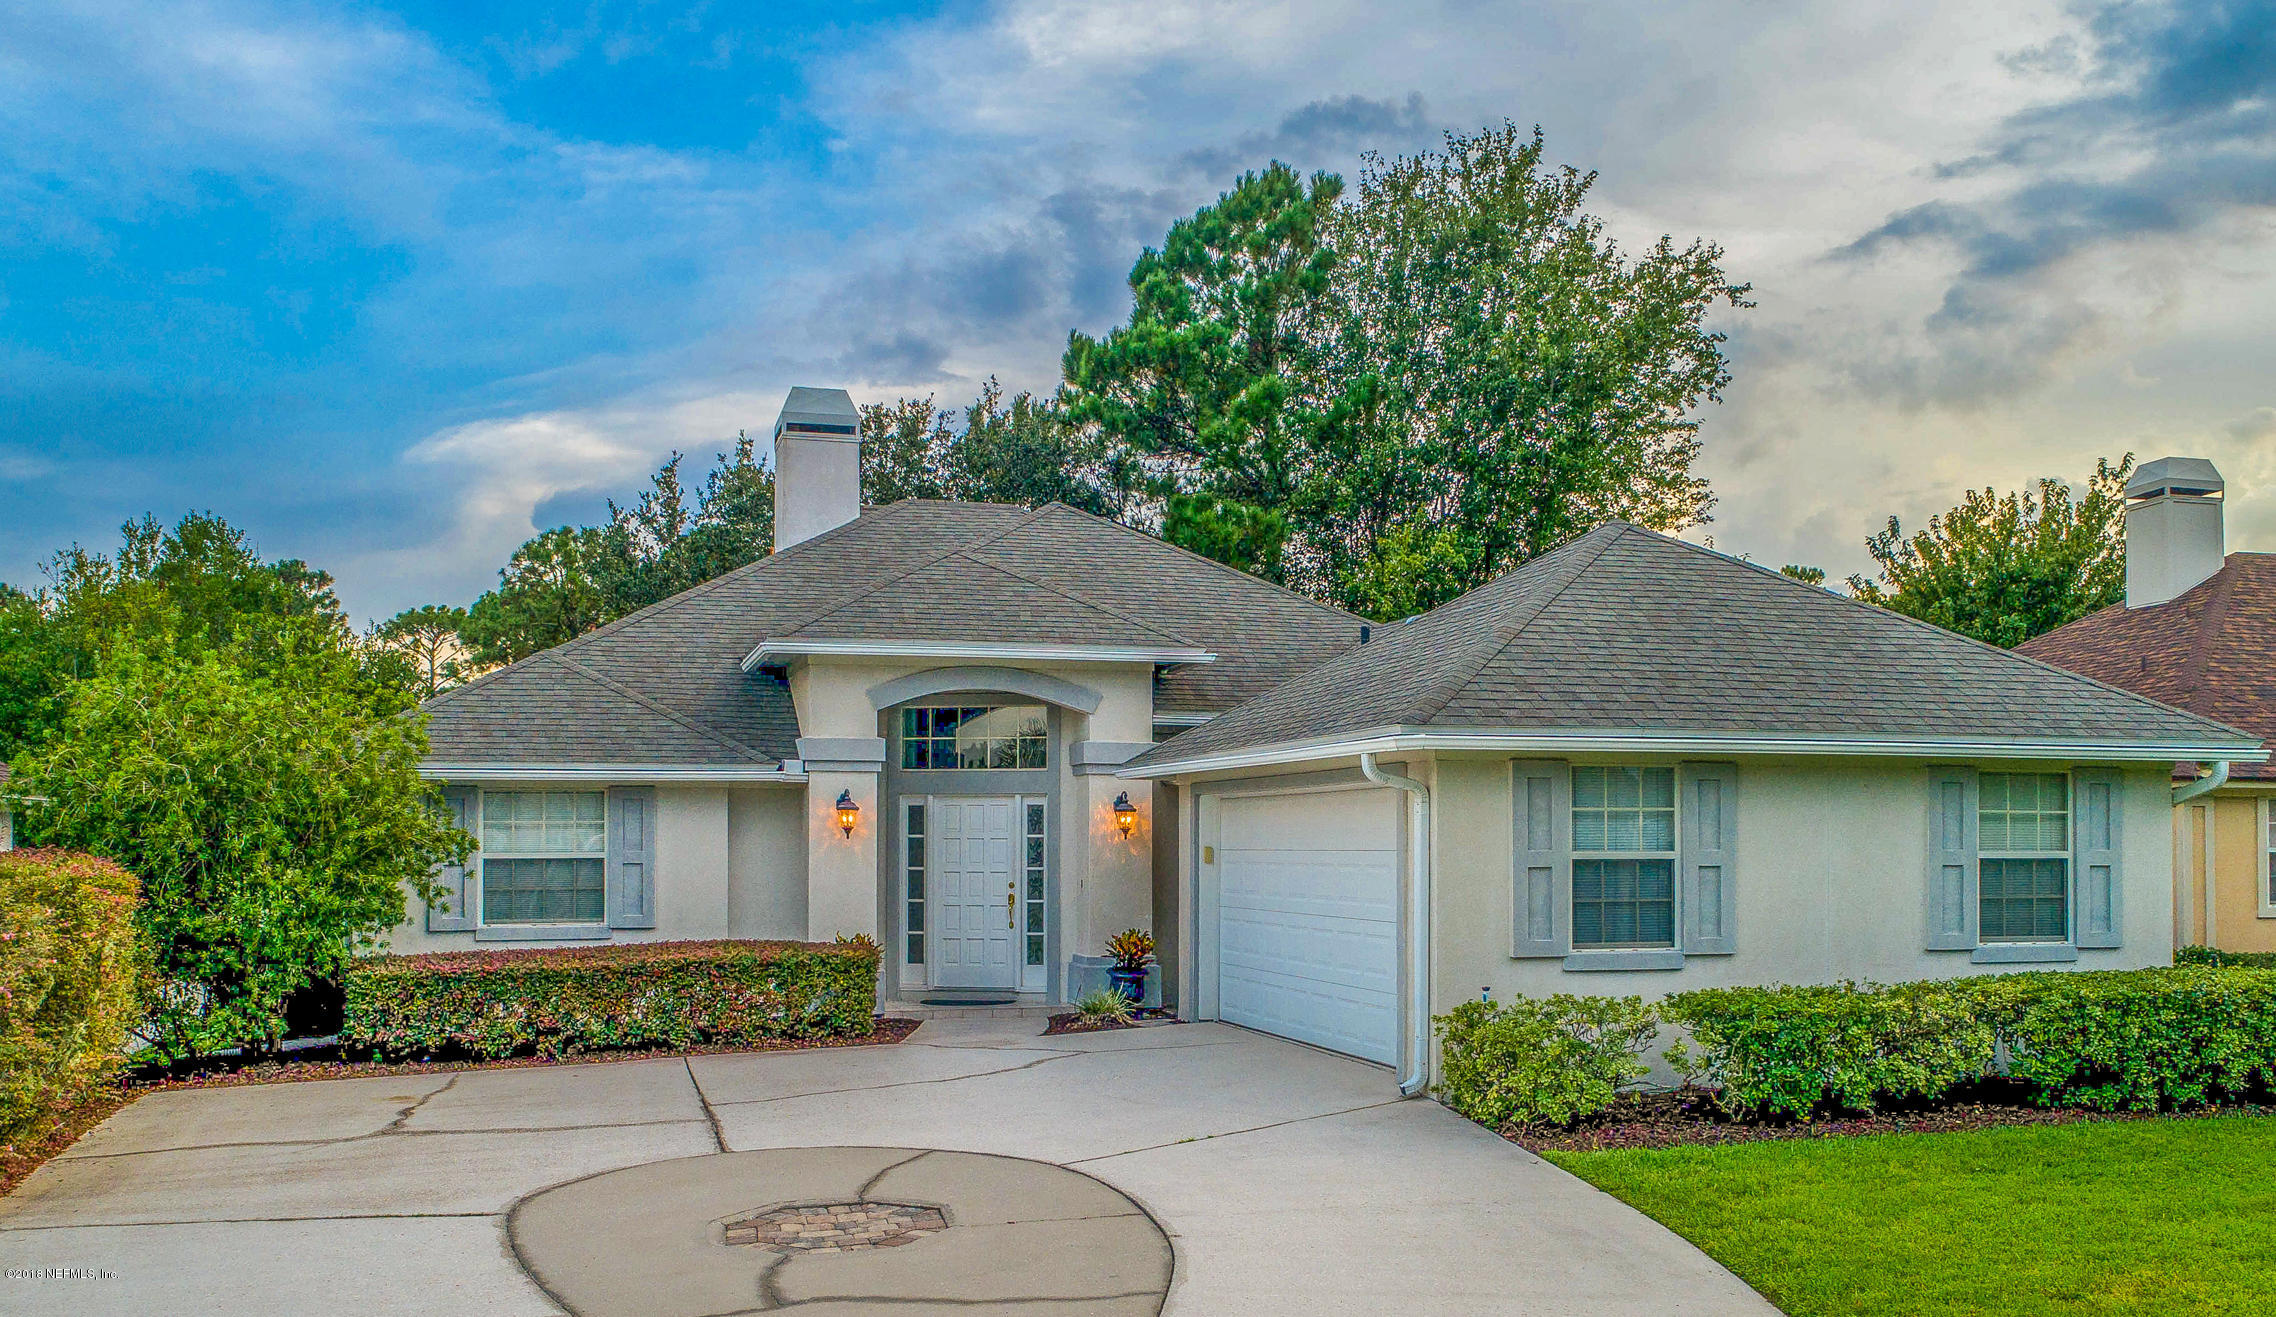 3532 OLYMPIC, GREEN COVE SPRINGS, FLORIDA 32043, 3 Bedrooms Bedrooms, ,2 BathroomsBathrooms,Residential - single family,For sale,OLYMPIC,961181